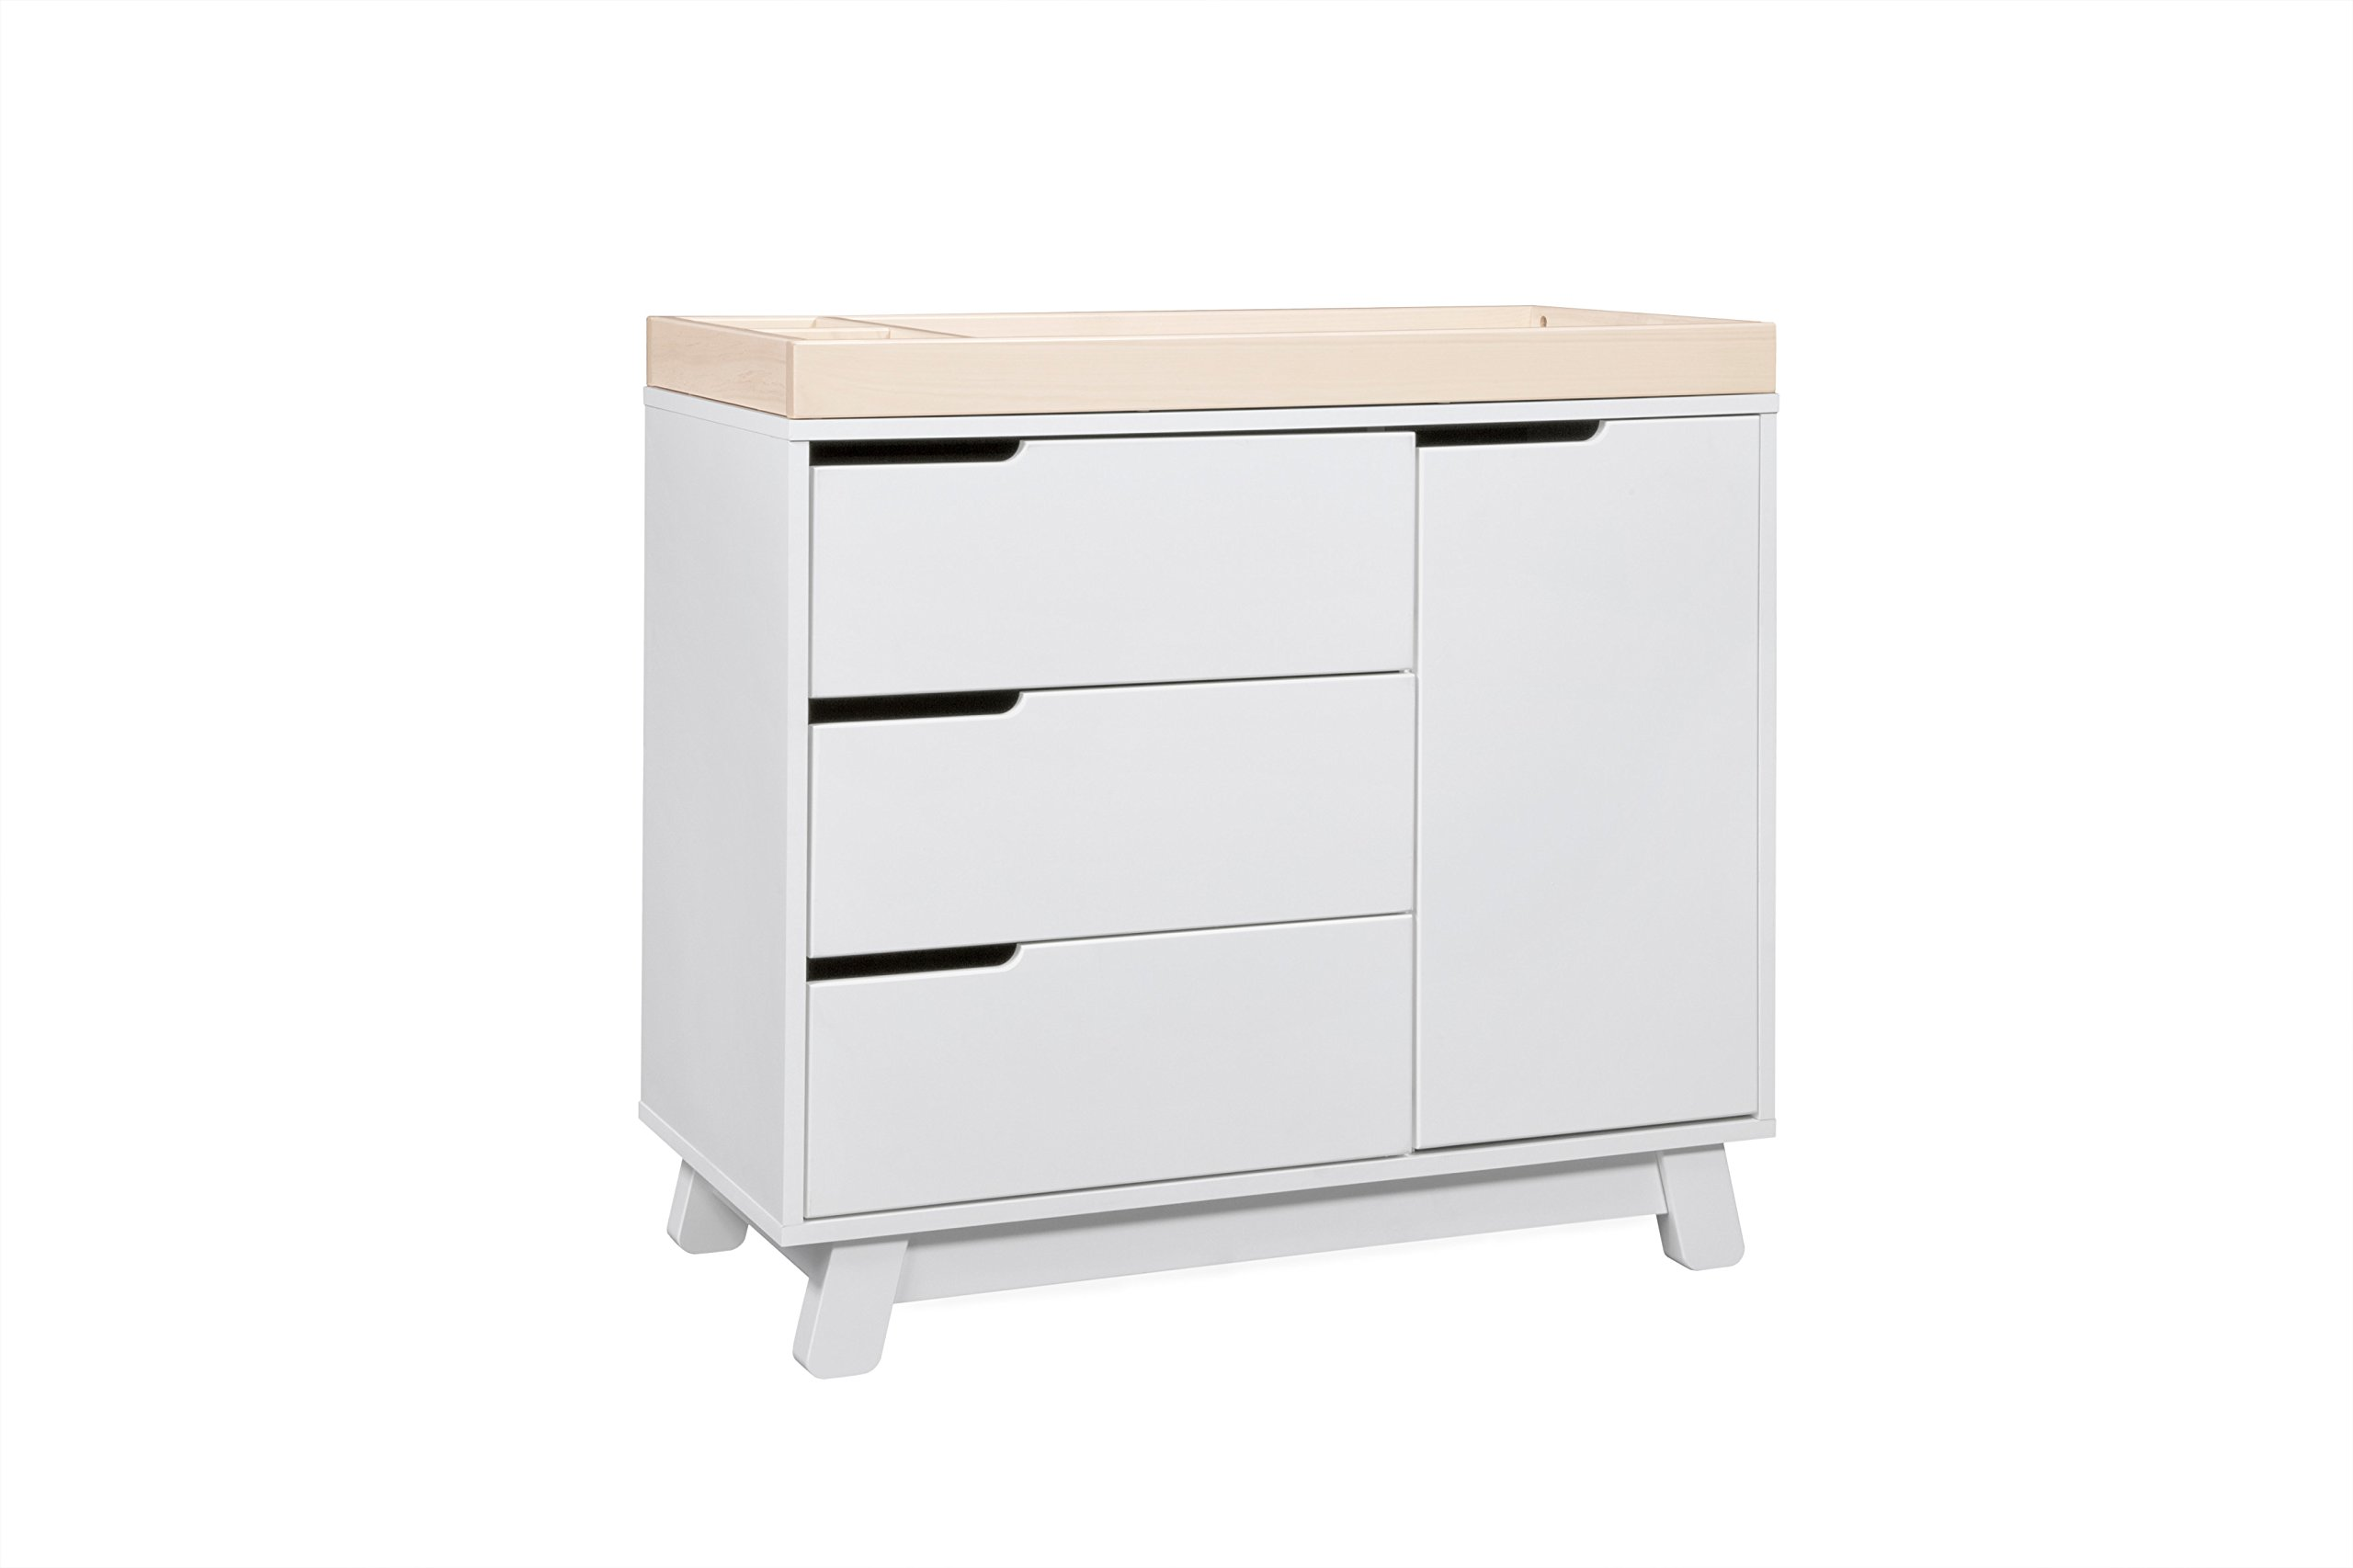 Babyletto Hudson 3-Drawer Changer Dresser with Removable Changing Tray, White / Washed Natural